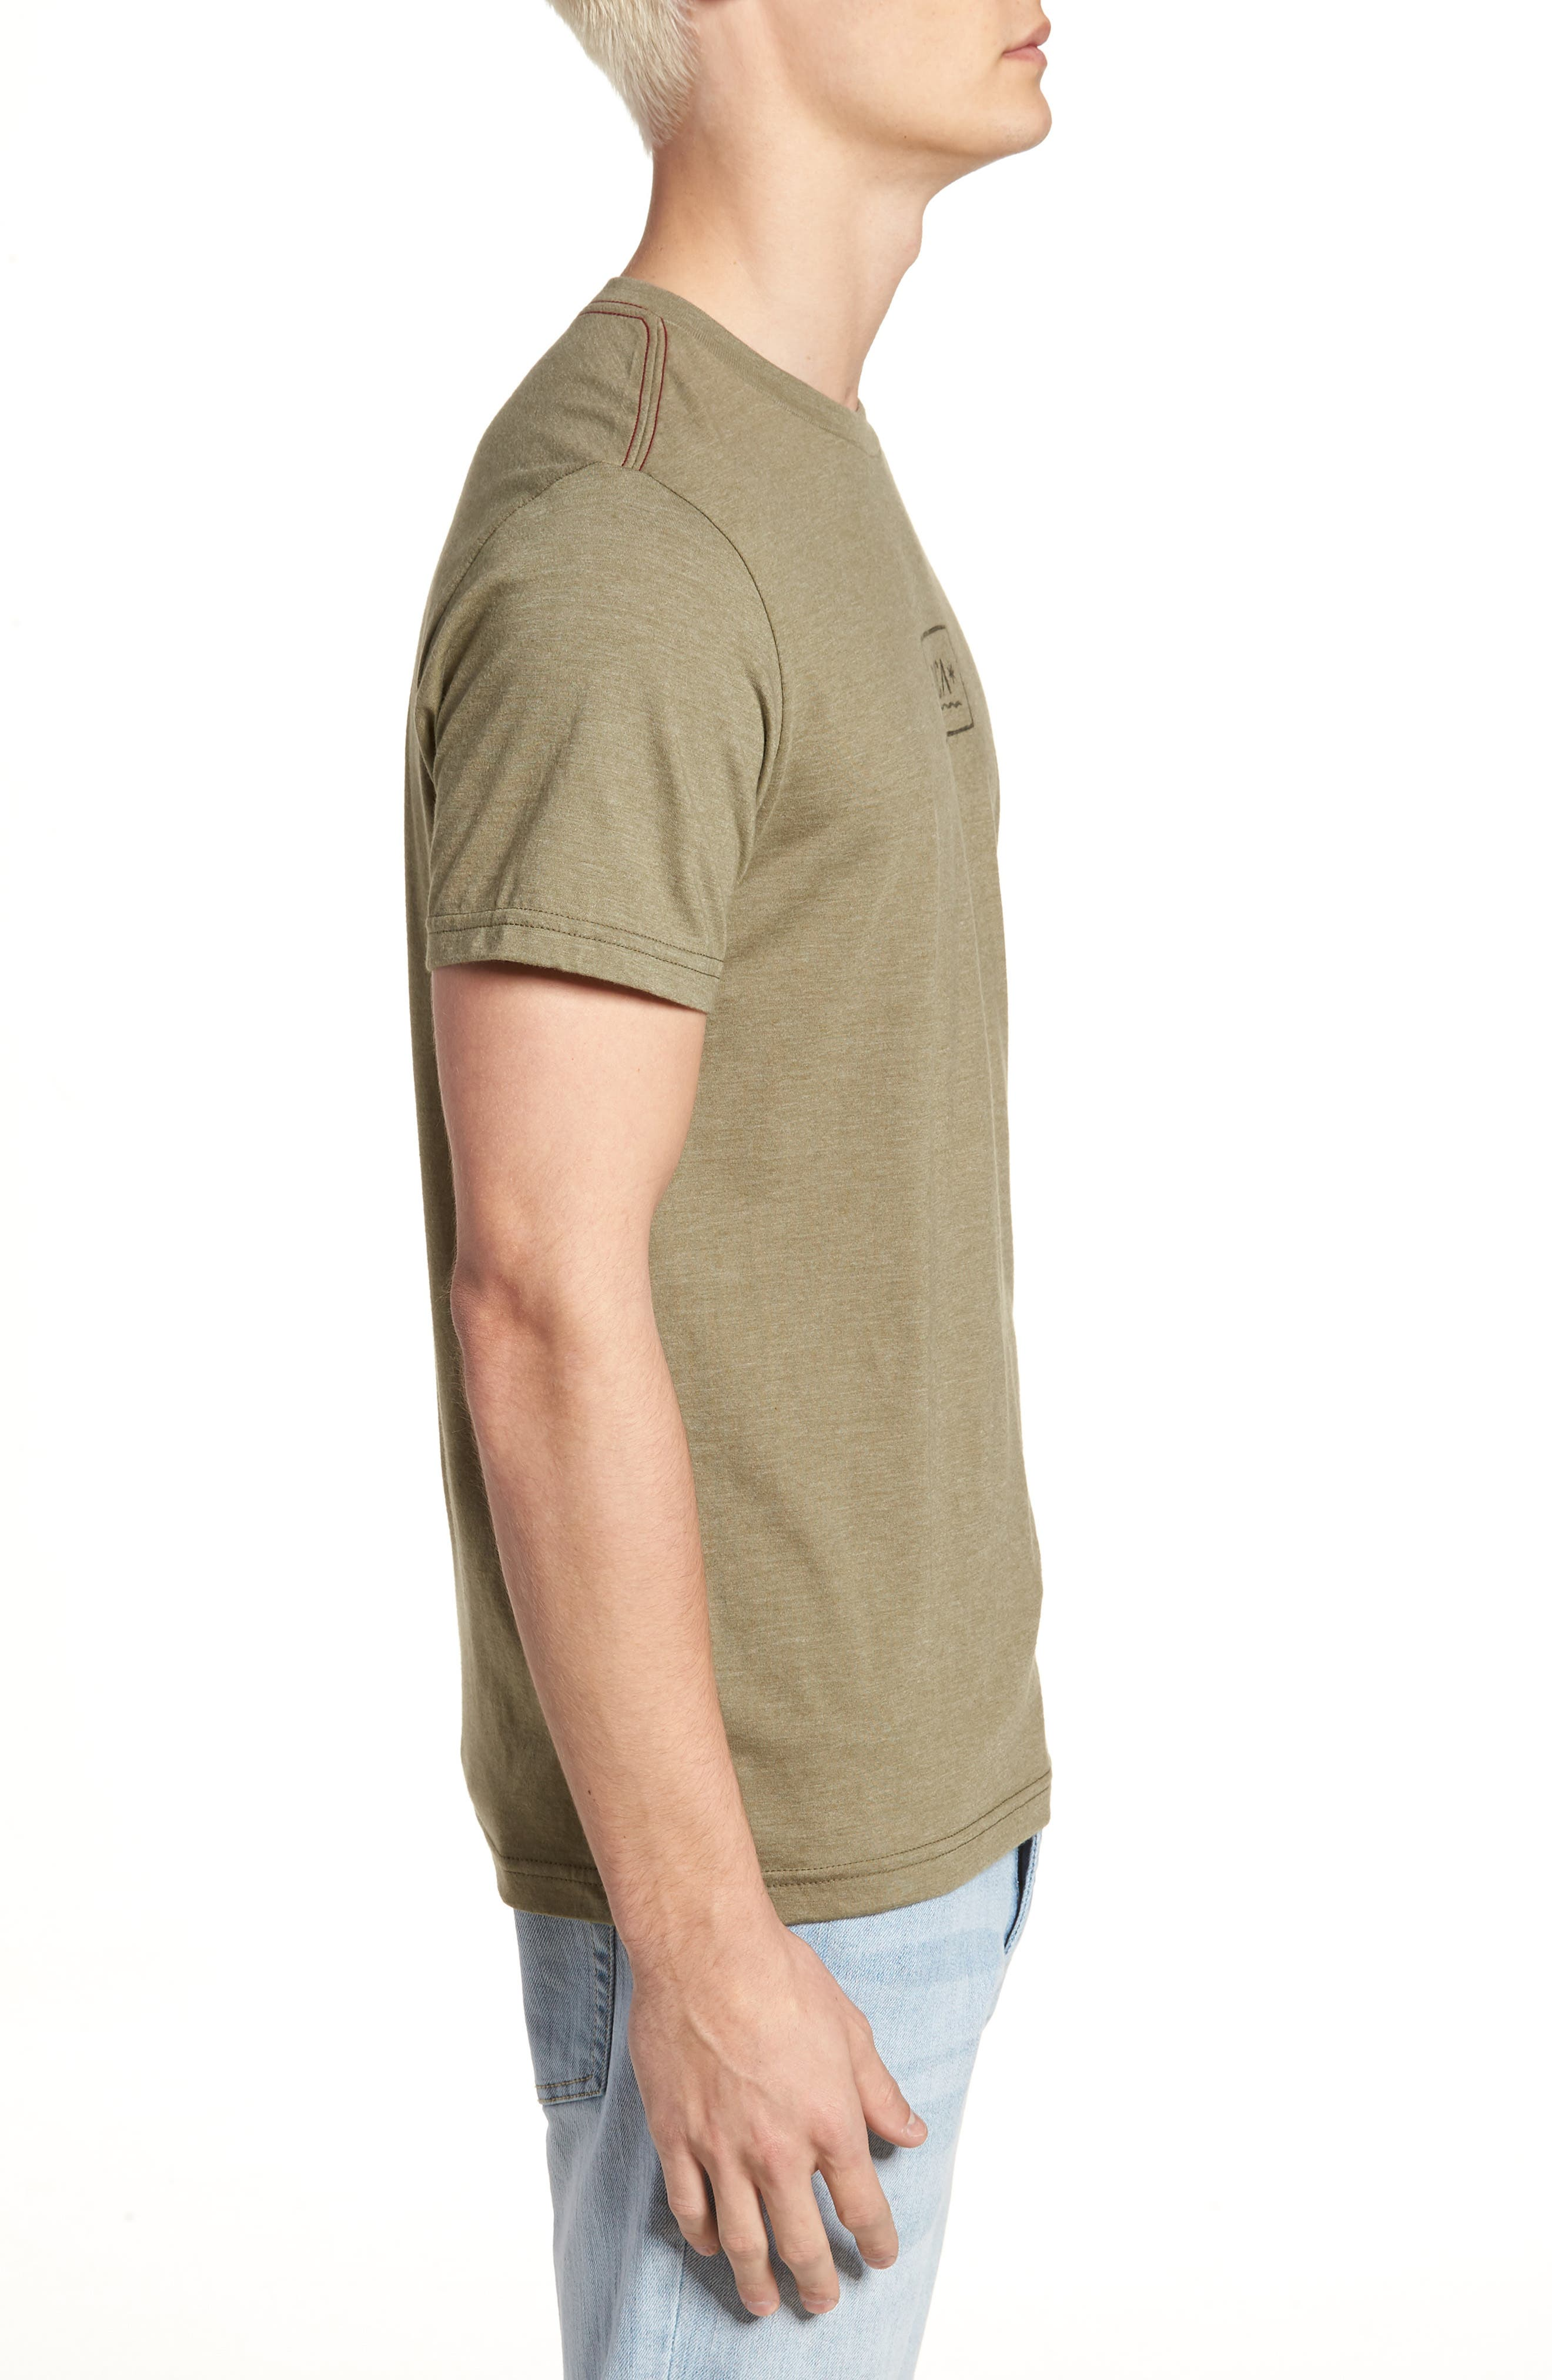 Isthmus Graphic T-Shirt,                             Alternate thumbnail 3, color,                             351